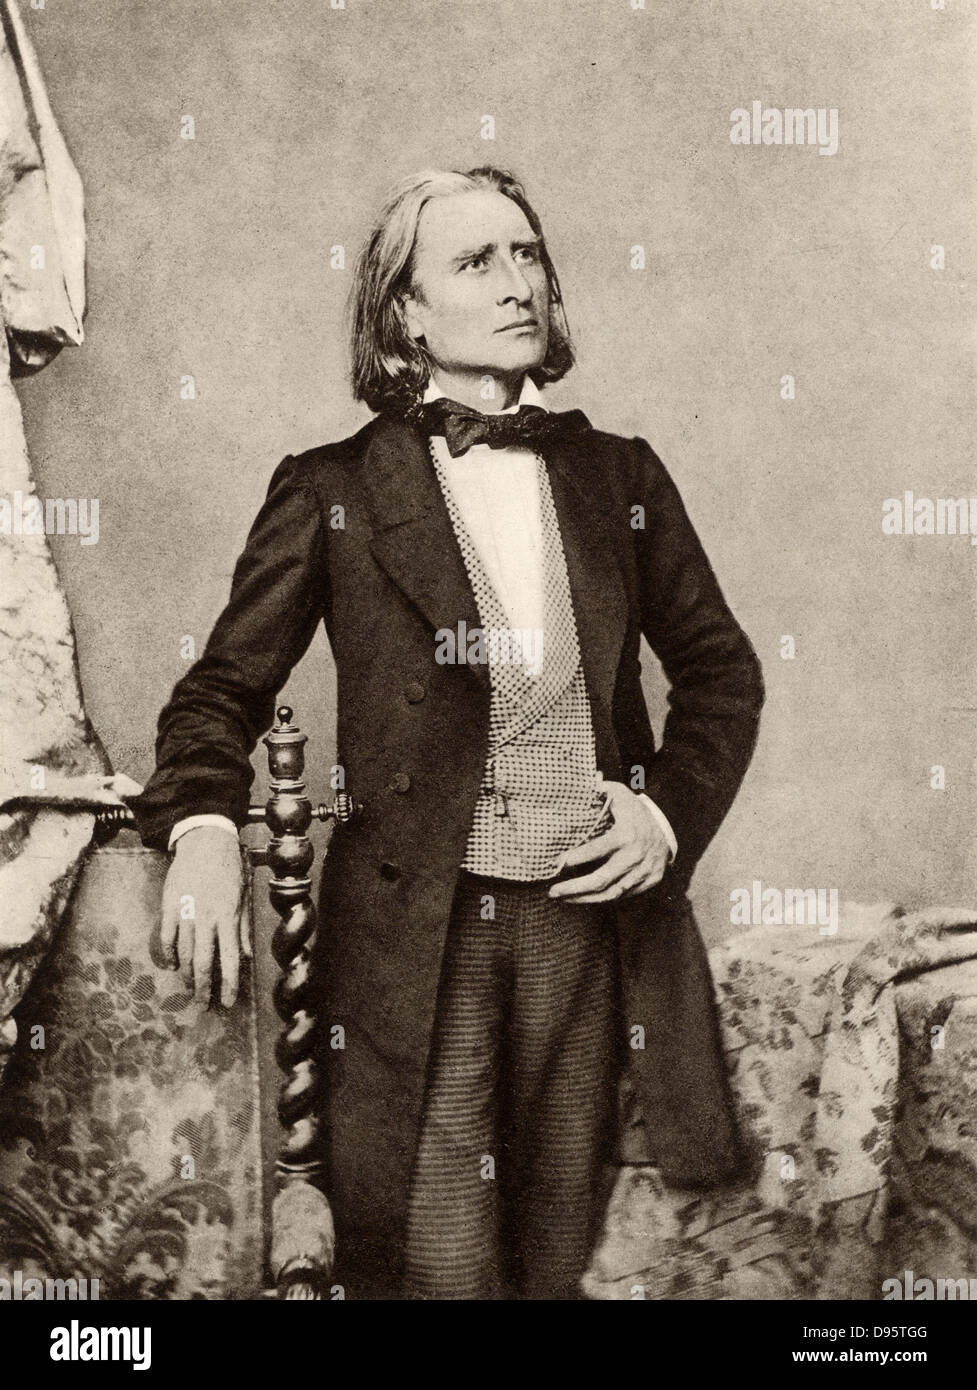 Franz (Ferencz) Liszt (1811-1886) Hungarian pianist and composer. After a photograph. - Stock Image